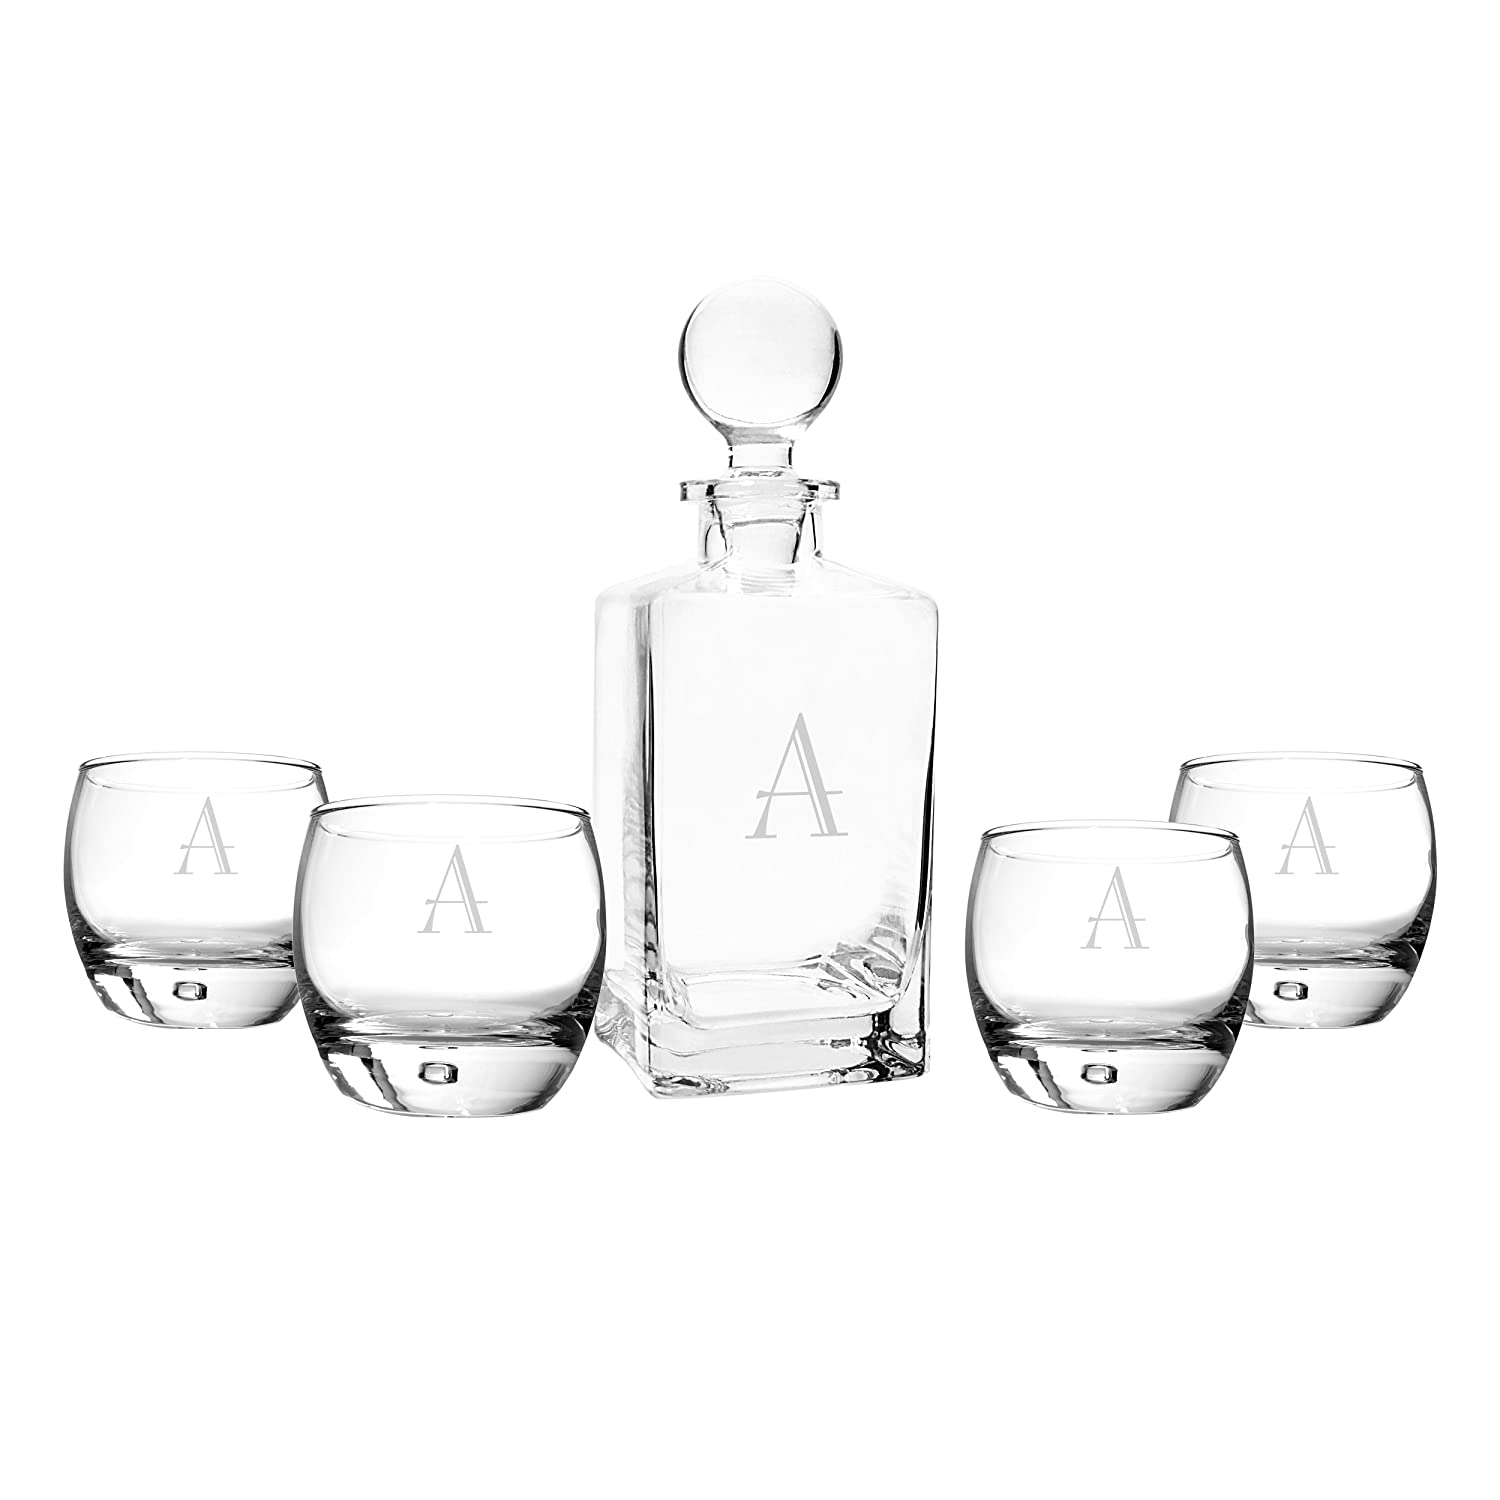 Cathy's Concepts Personalized Square Whiskey Decanter Set, Letter M Cathy's Concepts S1295-M